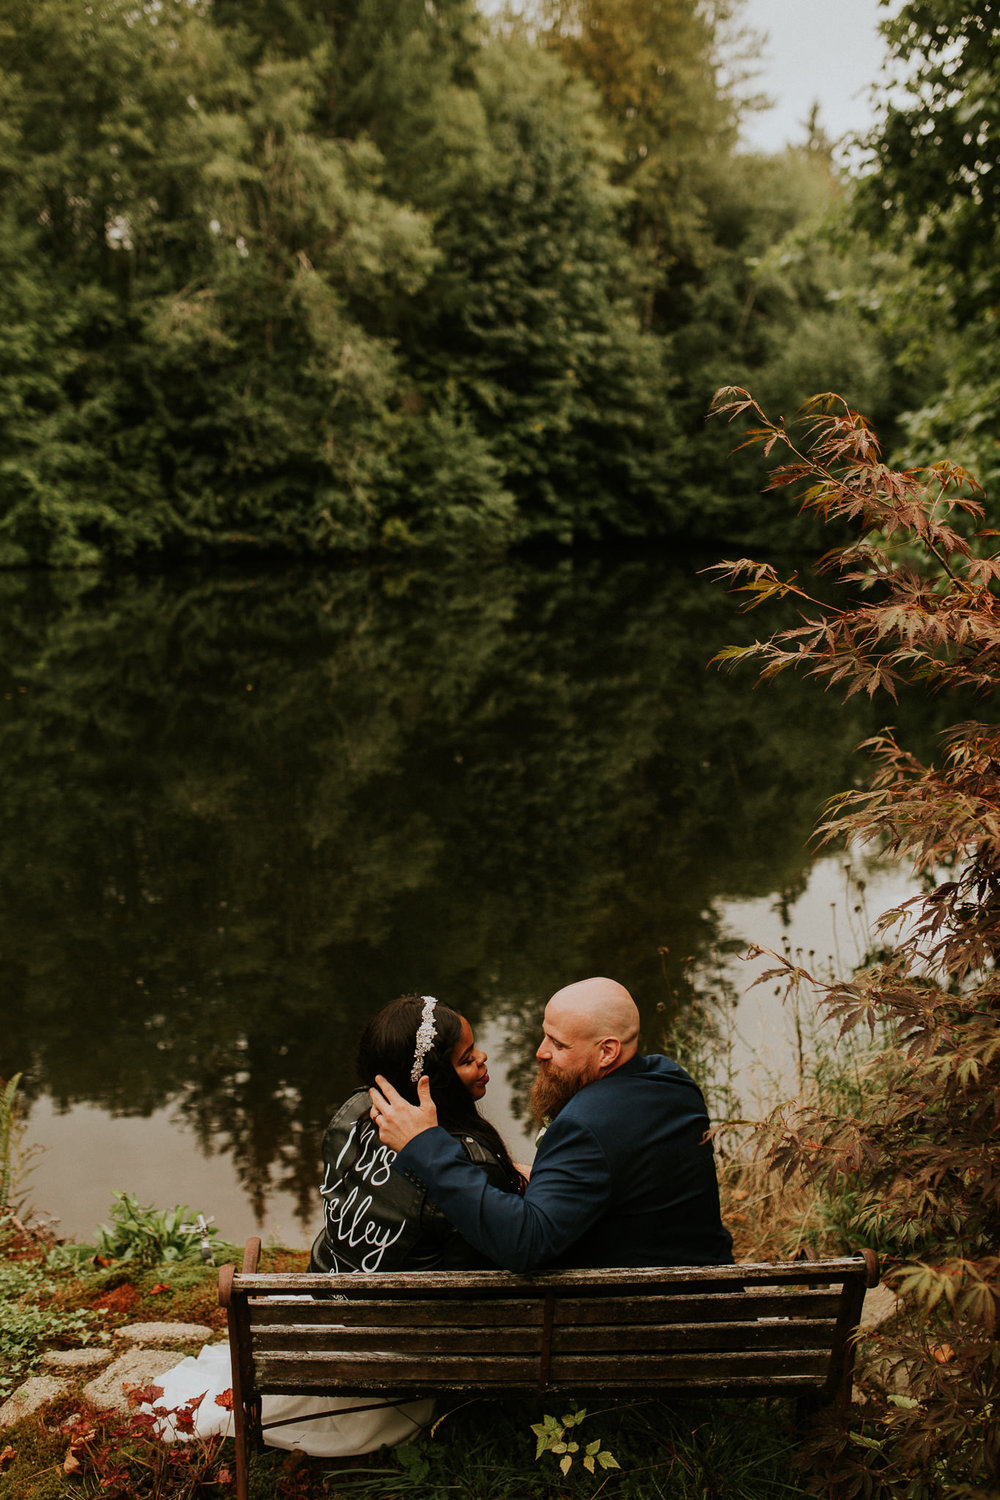 Lakeside-elopement-teasers-29.jpg